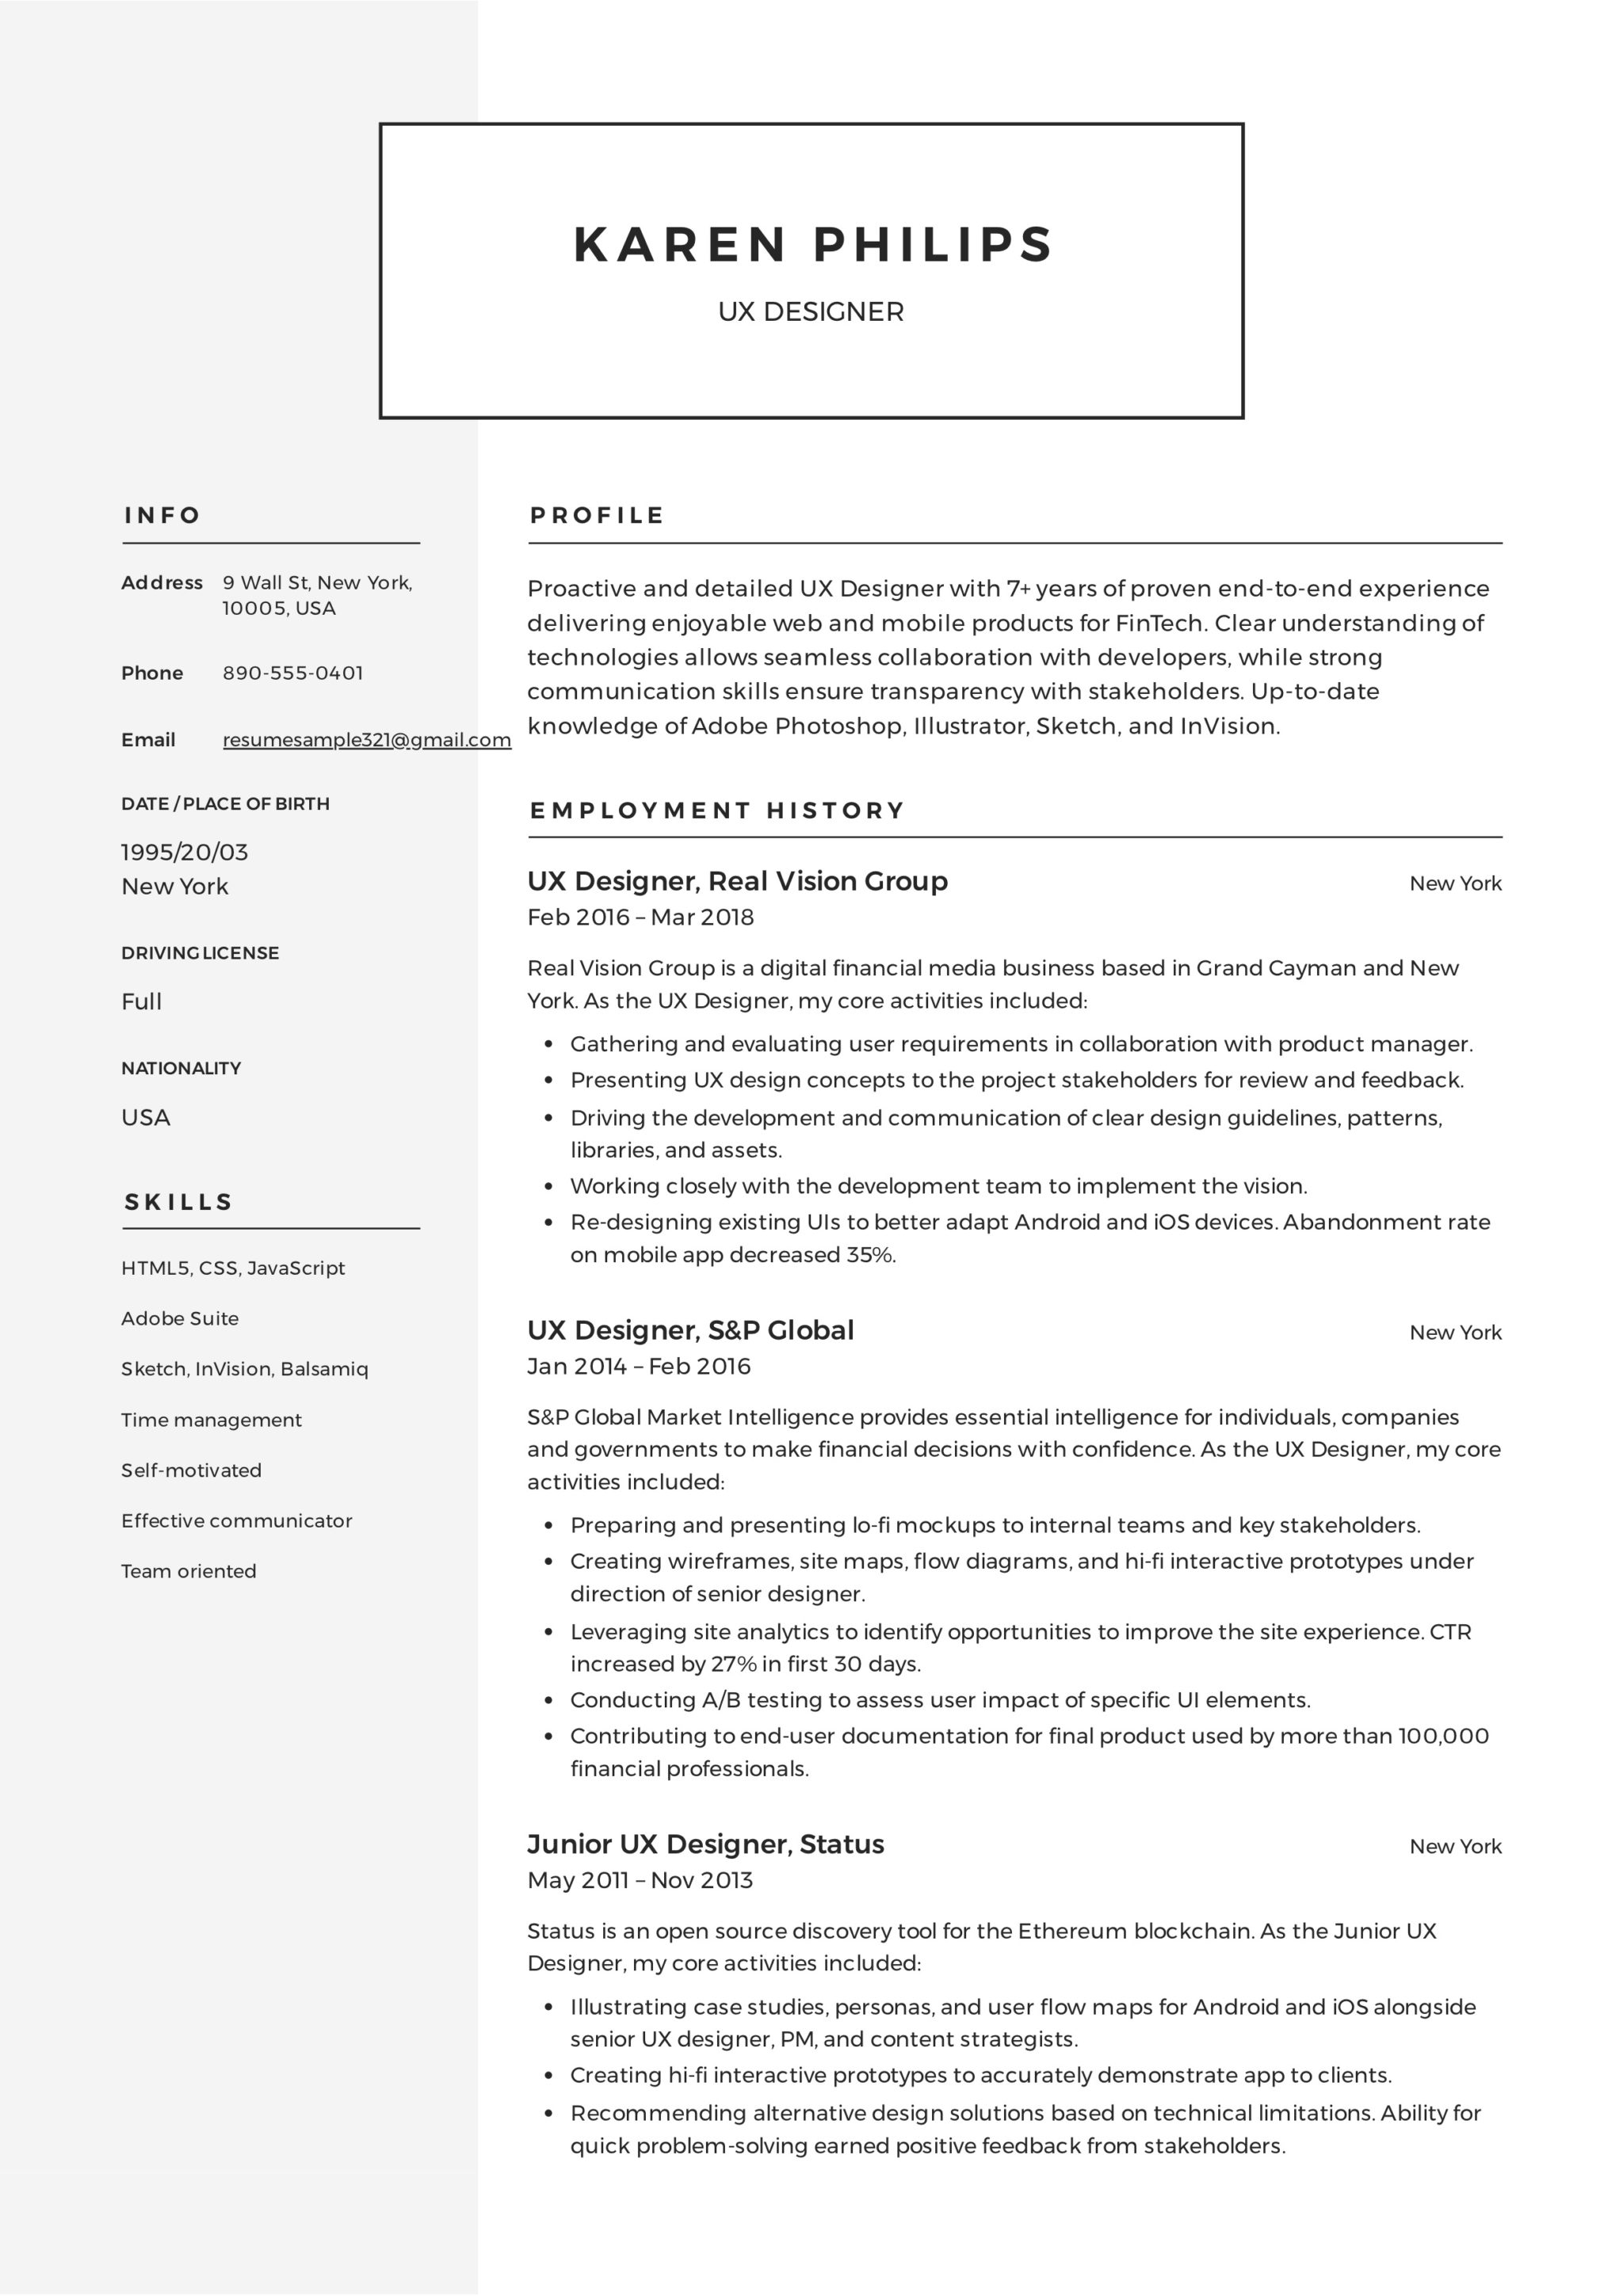 UX Designer Resume Sample - Karen Philips (4)